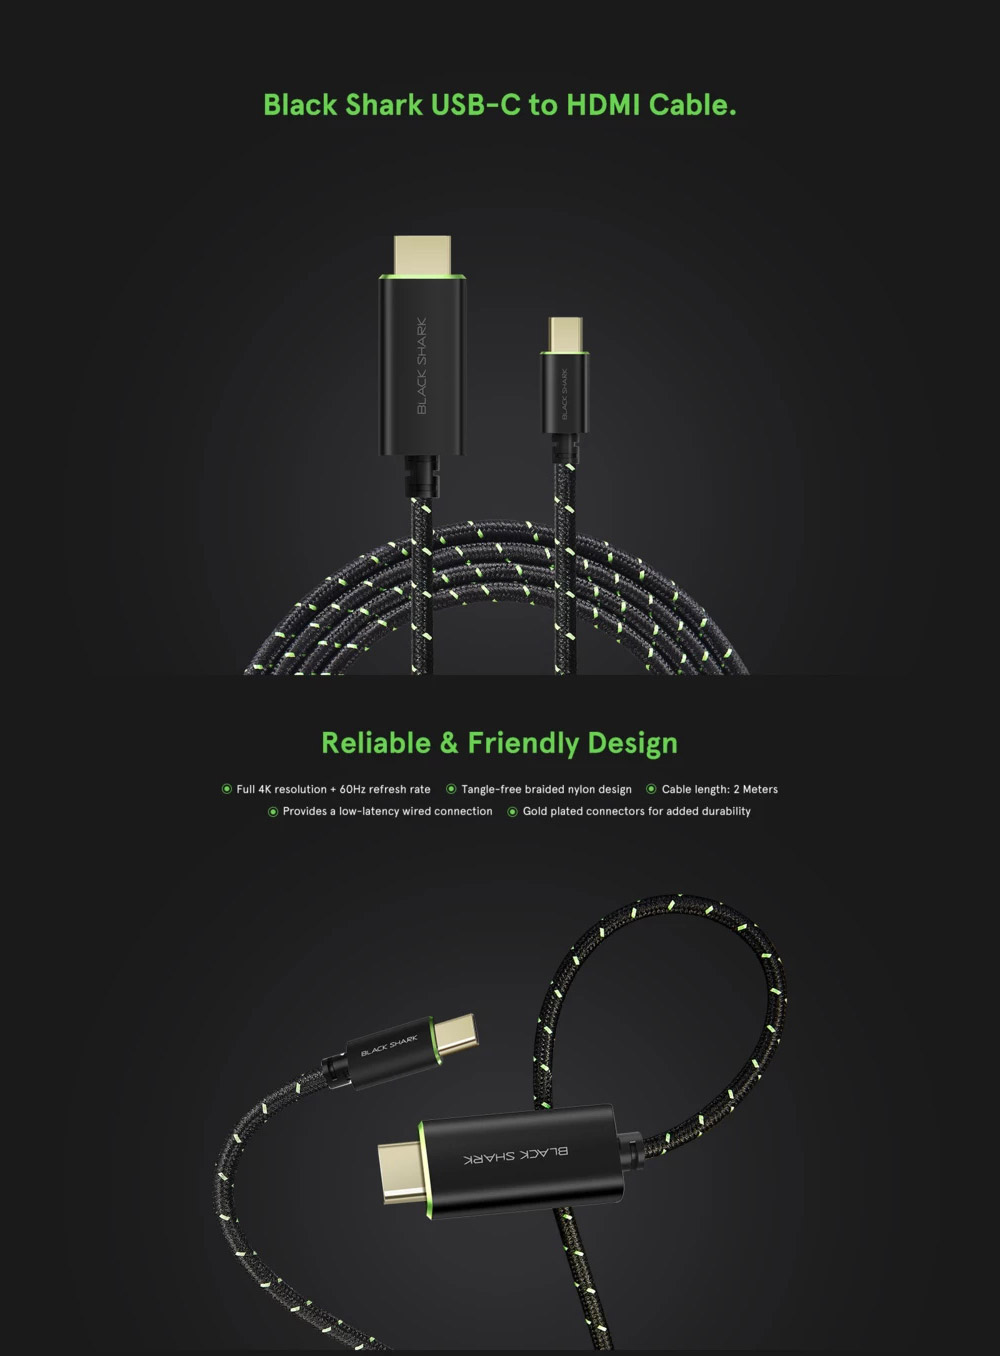 xiaomi black shark type-c to hdmi cable